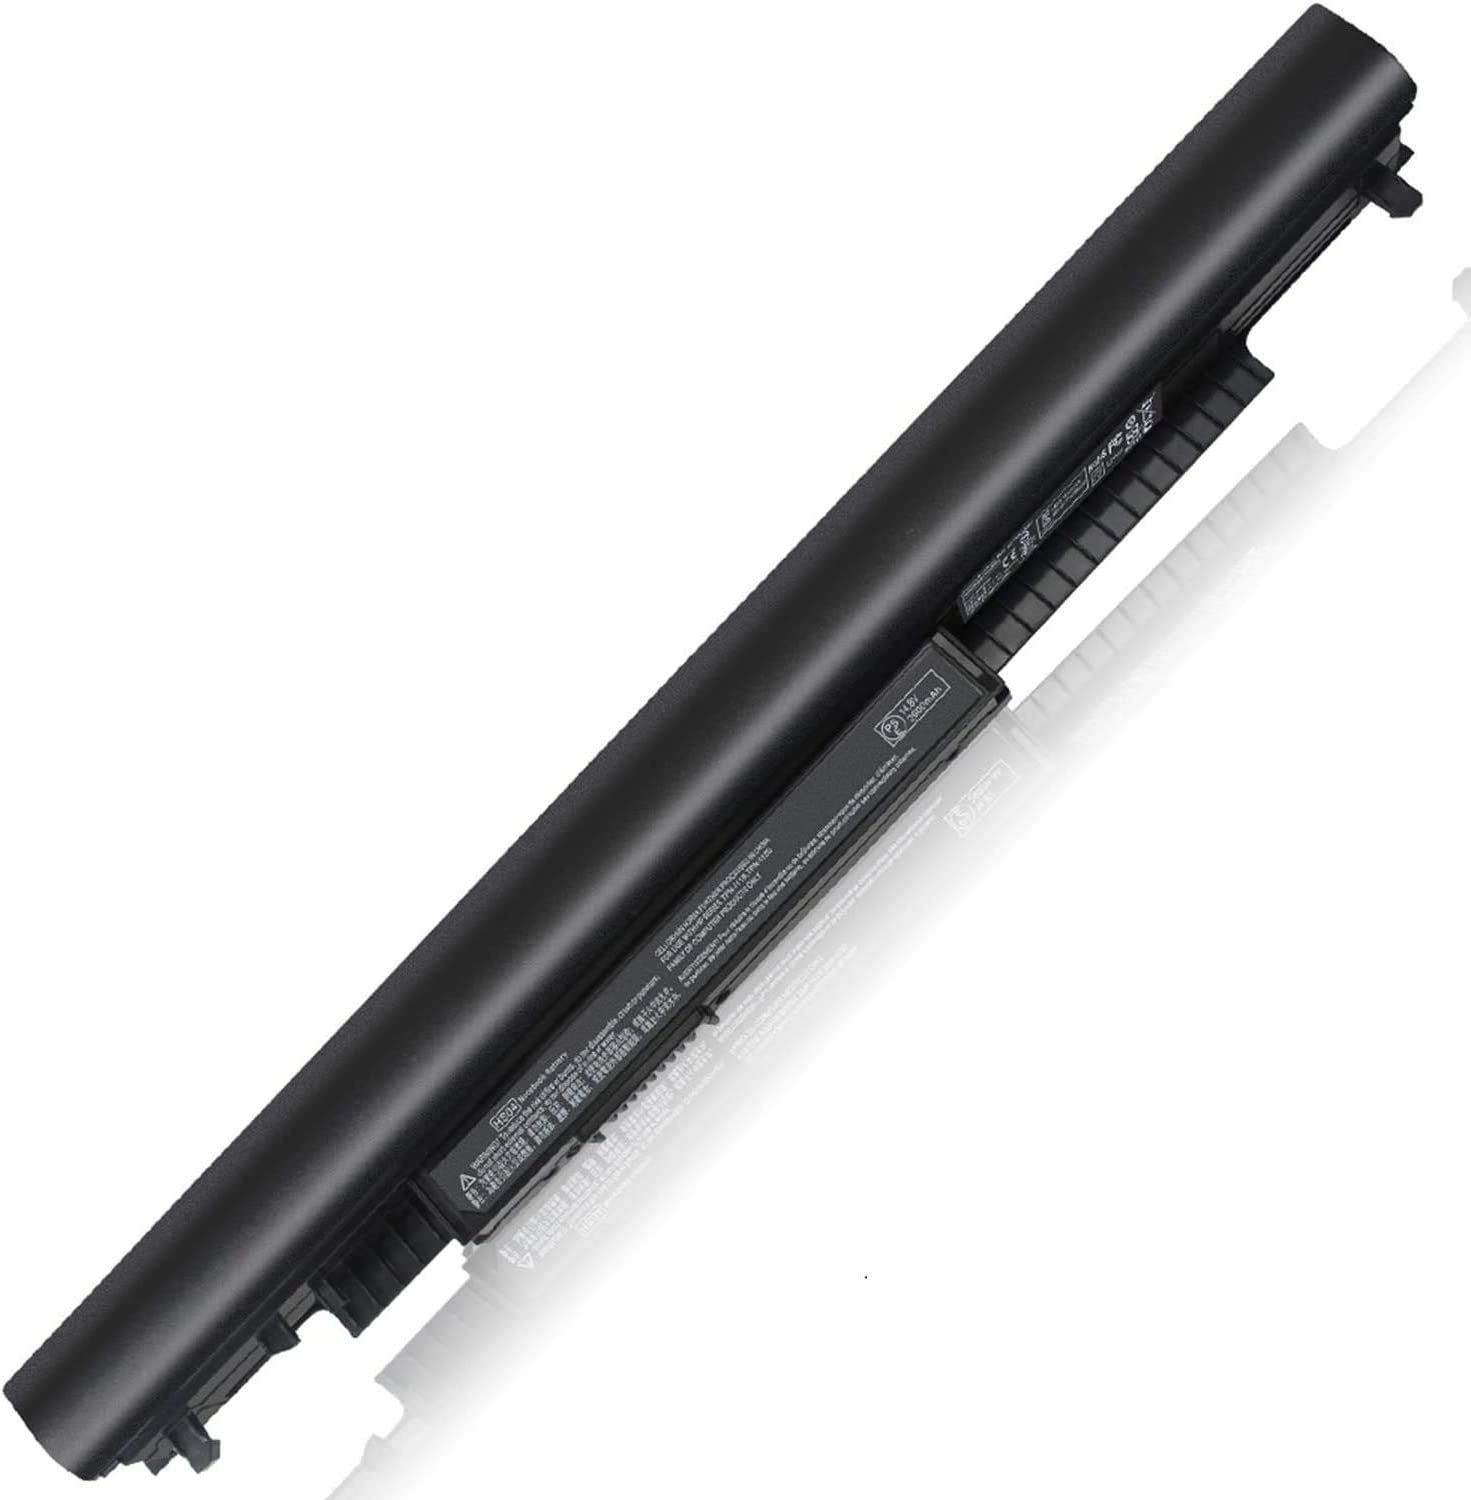 HS03 HS04 Notebook Battery for HP Spare 807956-001 807957-001 807612-421 HSTNN-LB6U N2L85AA HS03031-CL HS04041-CL,HP Notebook 14, HP Notebook 15,15-ay039wm 15-ay192nr 15-ay013dx 17-y088d 17-y016cy